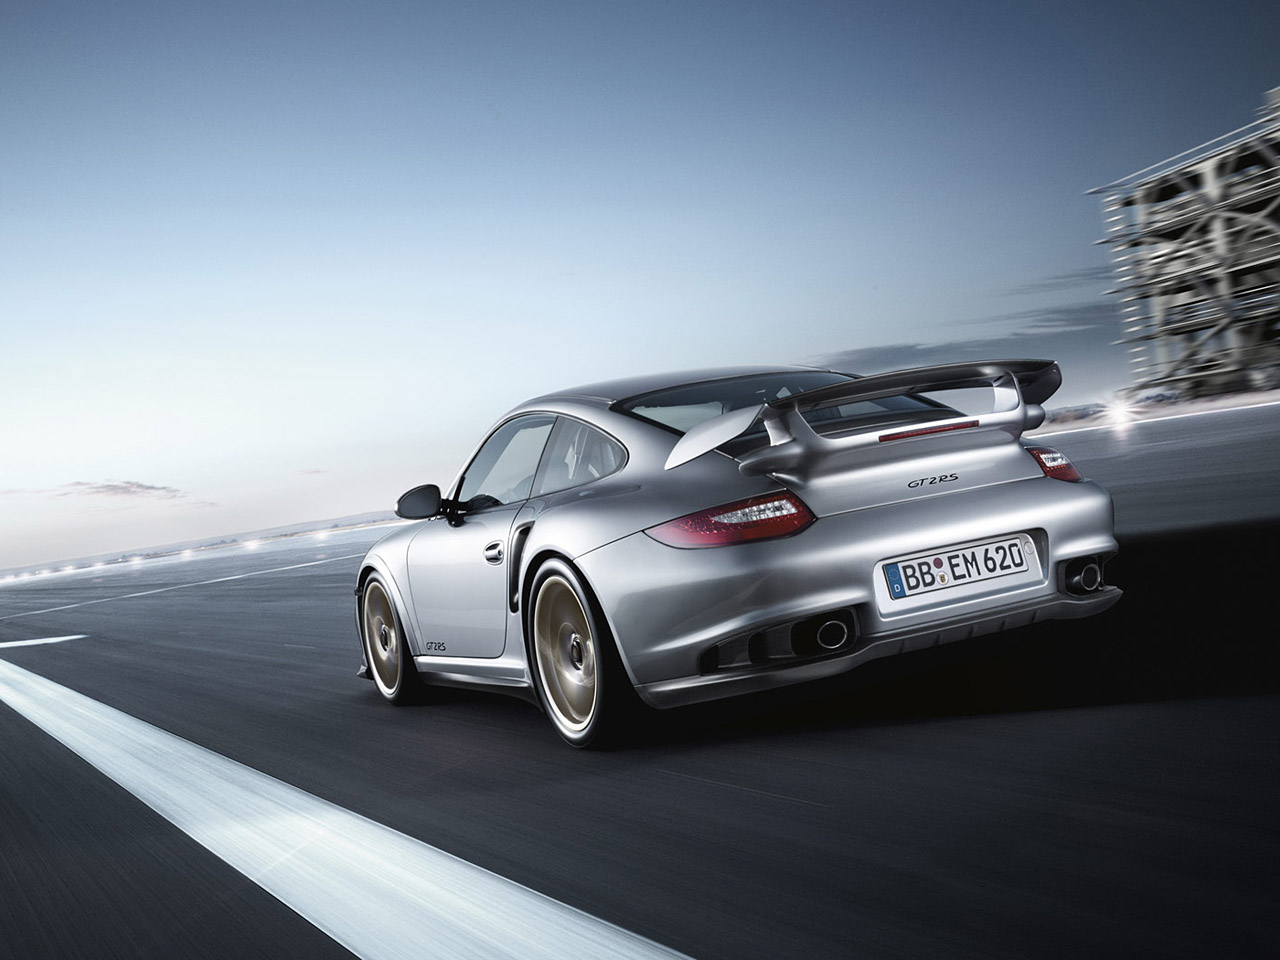 porsche 911 gt2 rs turbo price porsche 911 gt2 rs launched in india price specs the porsche. Black Bedroom Furniture Sets. Home Design Ideas